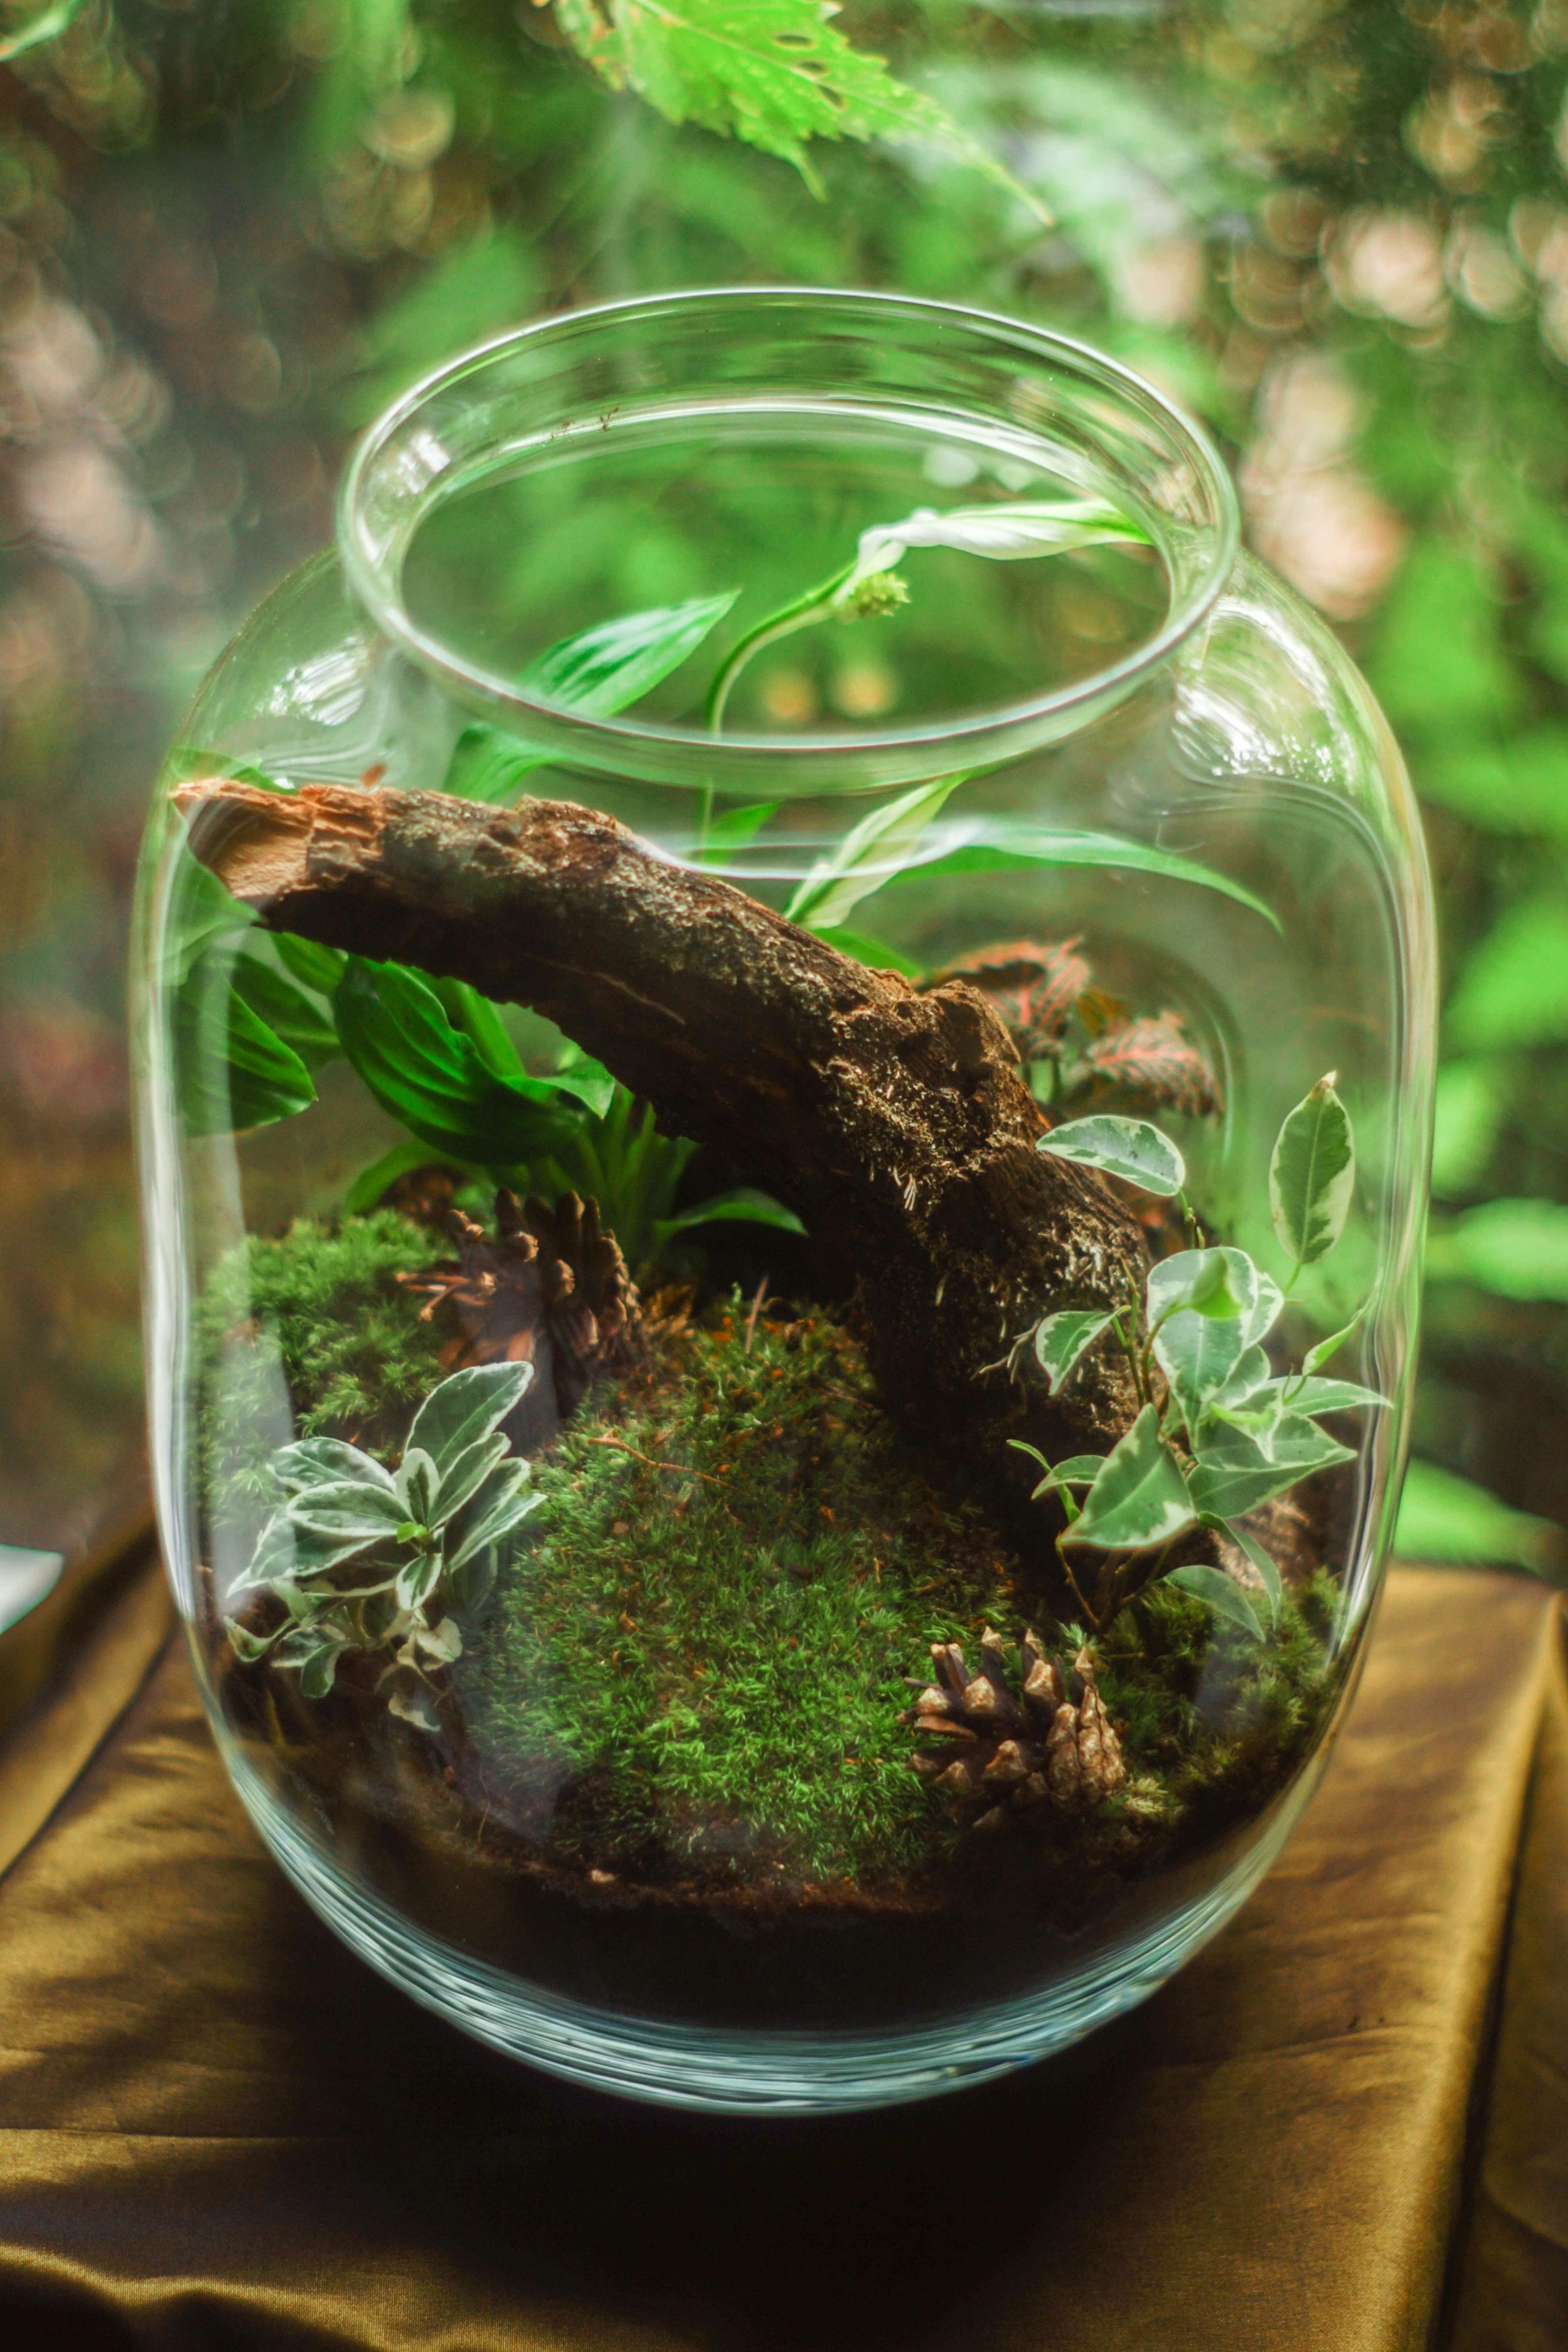 Plants for fairy gardens in a clear glass jar